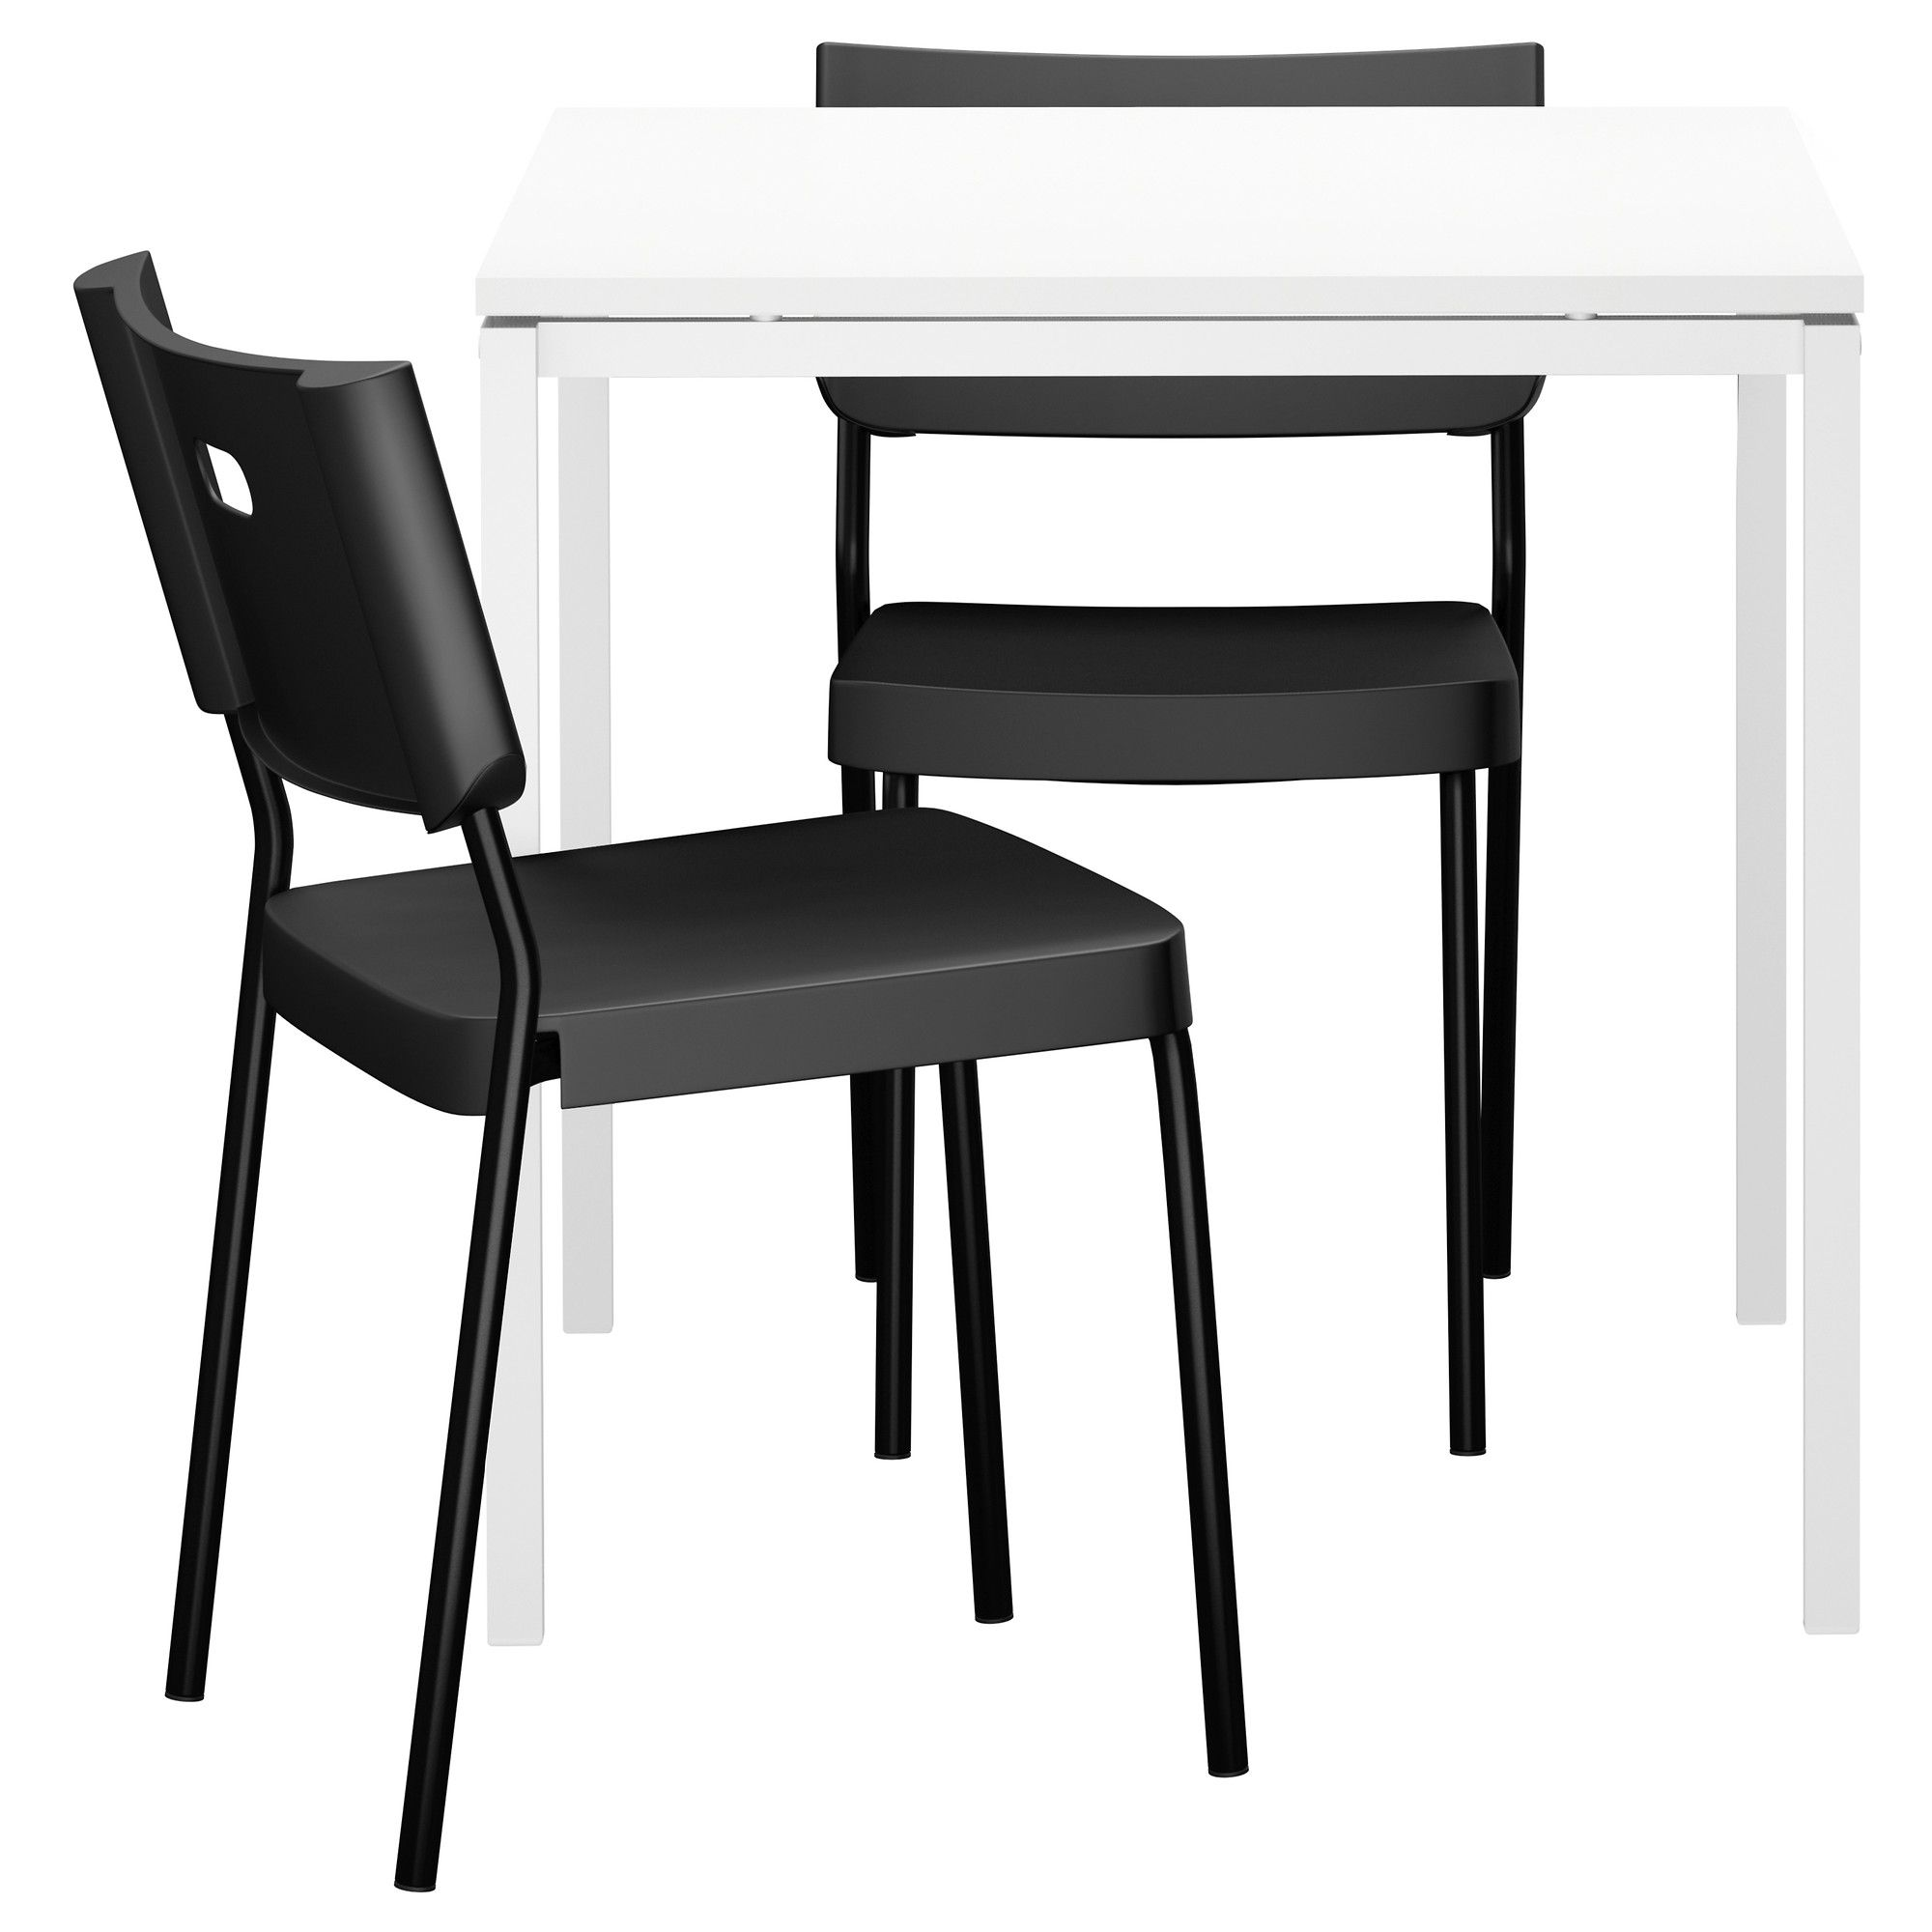 Melltorpherman table and chairs whiteblack ikea youth